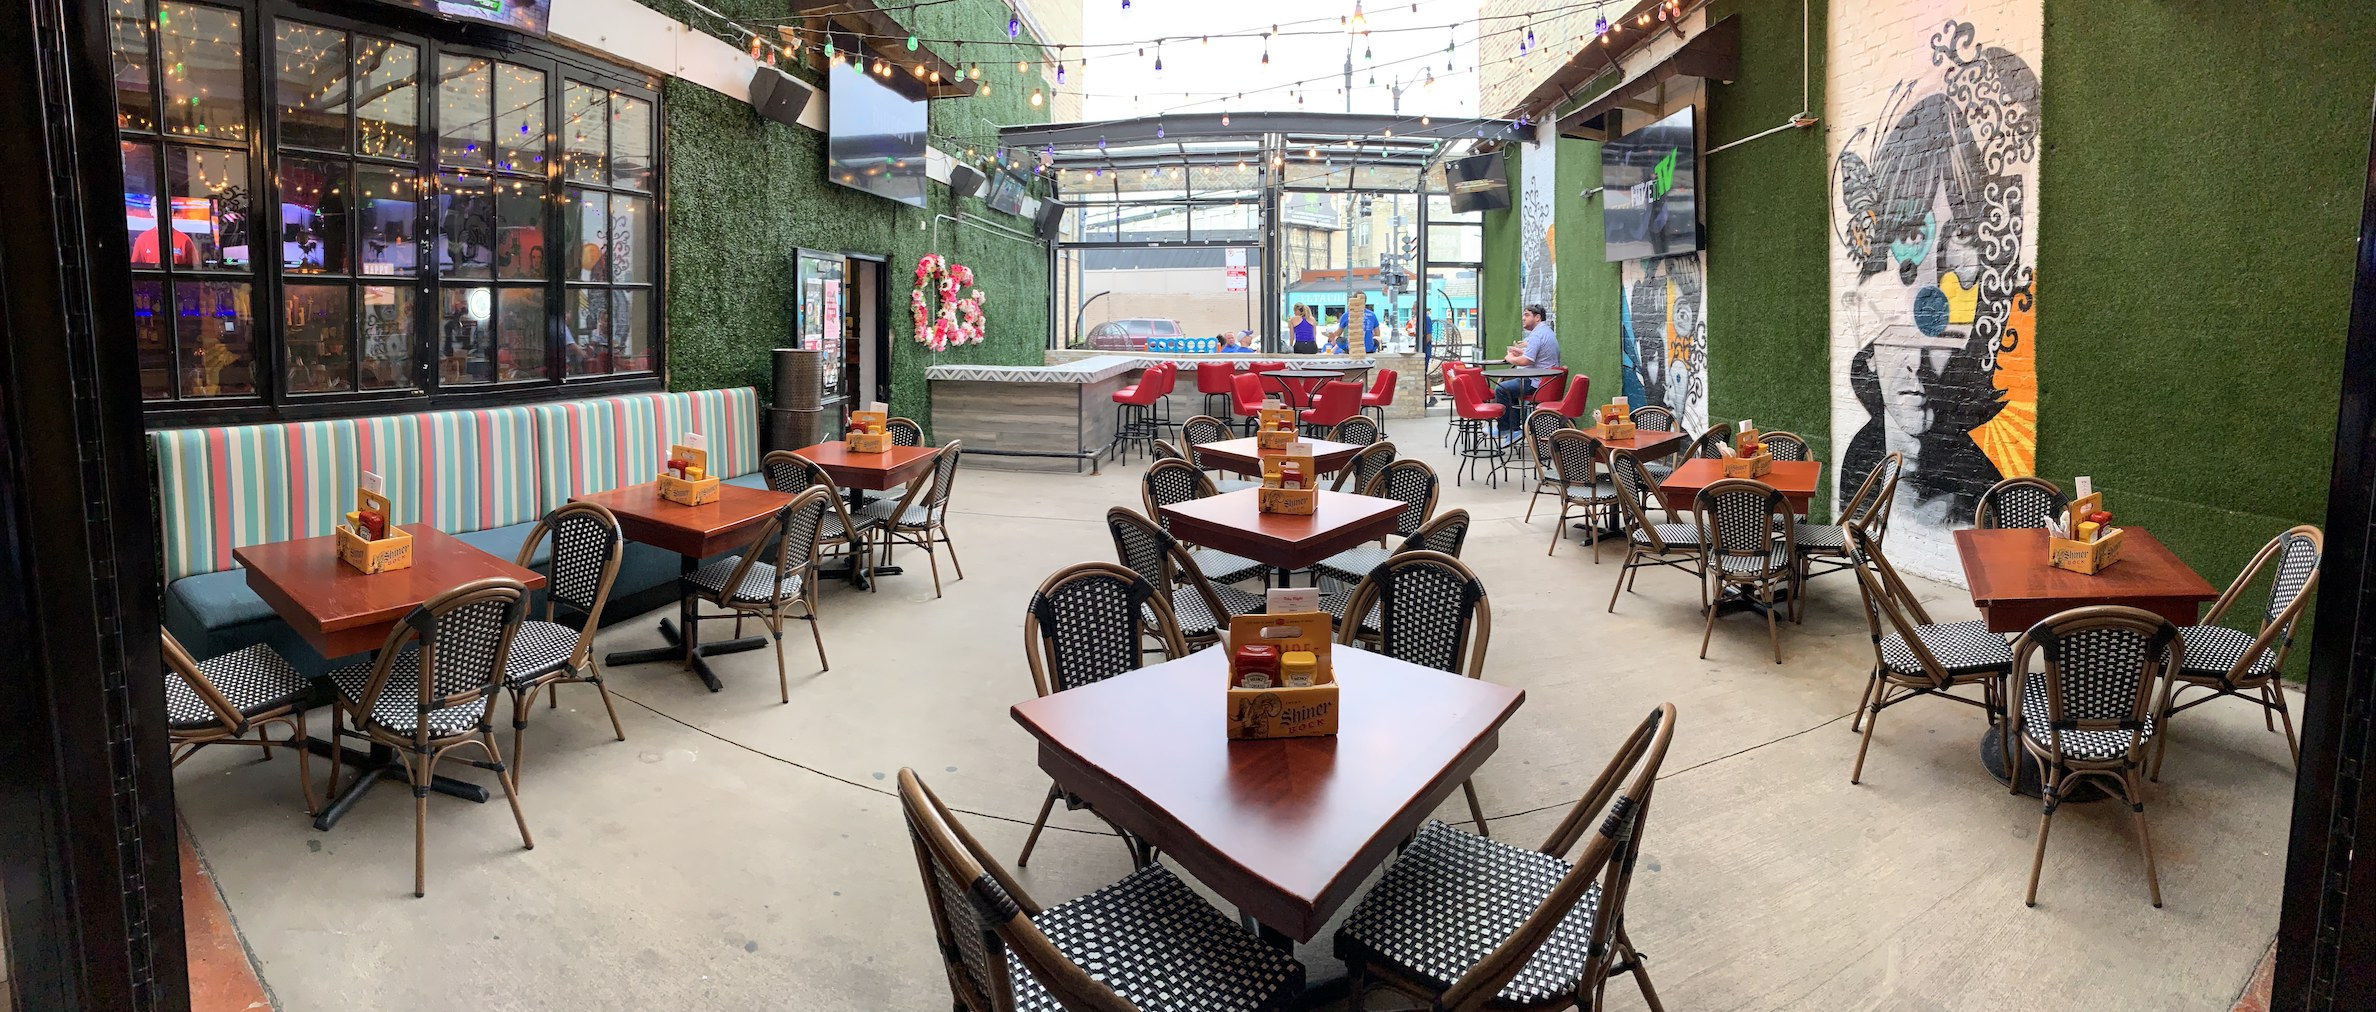 Photo #3 Patio at Old Grounds Social